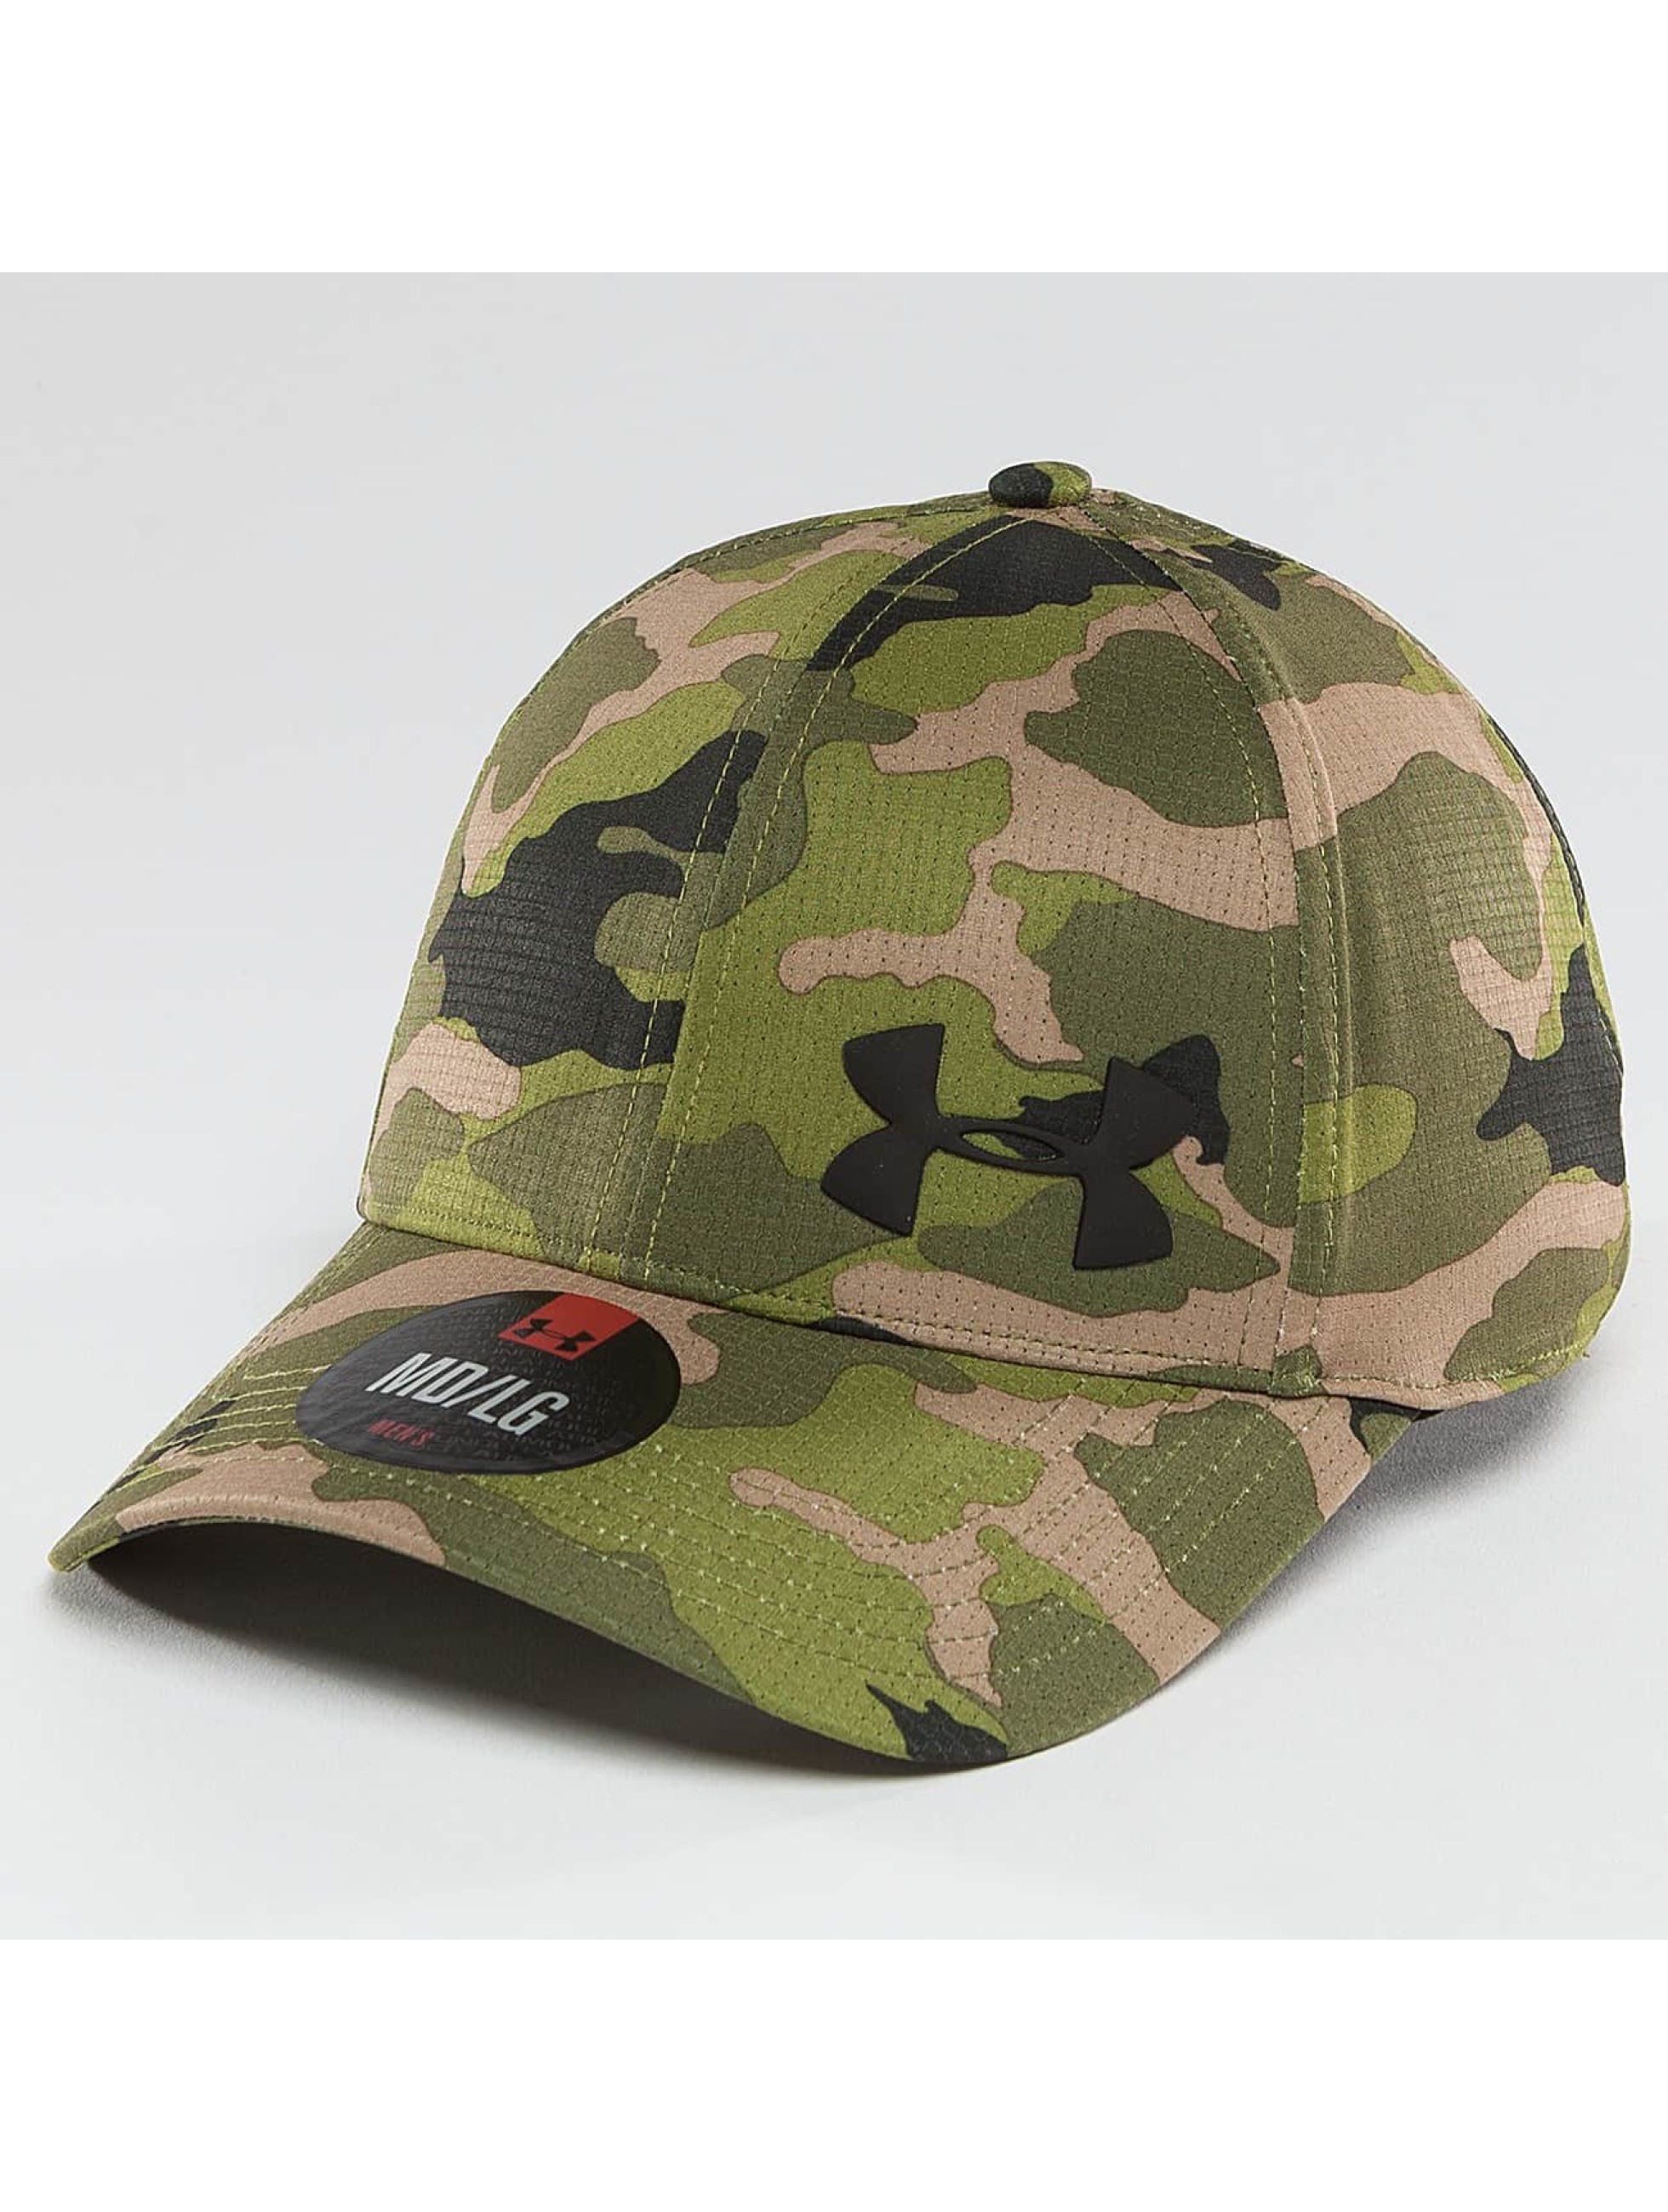 Under Armour Flexfitted Cap AirVent green